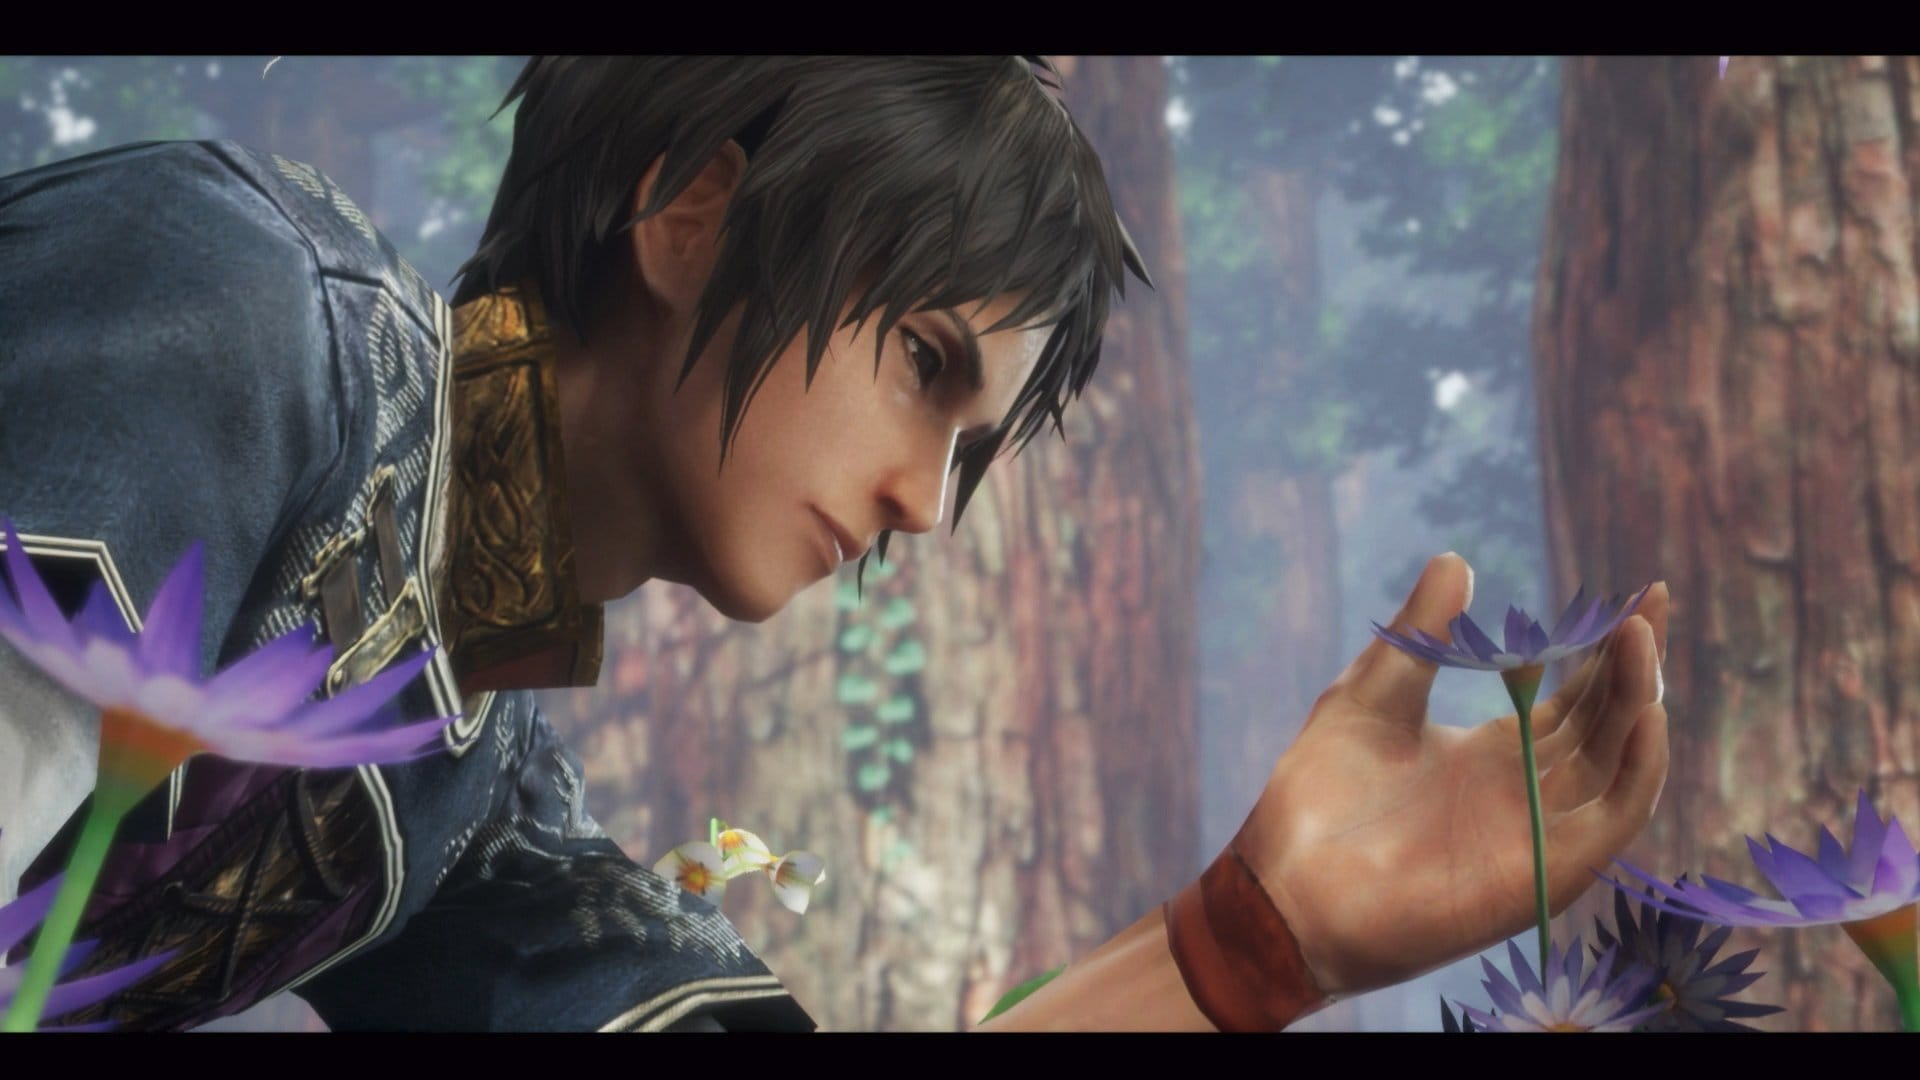 The Last Remnant Remastered gets a surprise release in the App Store